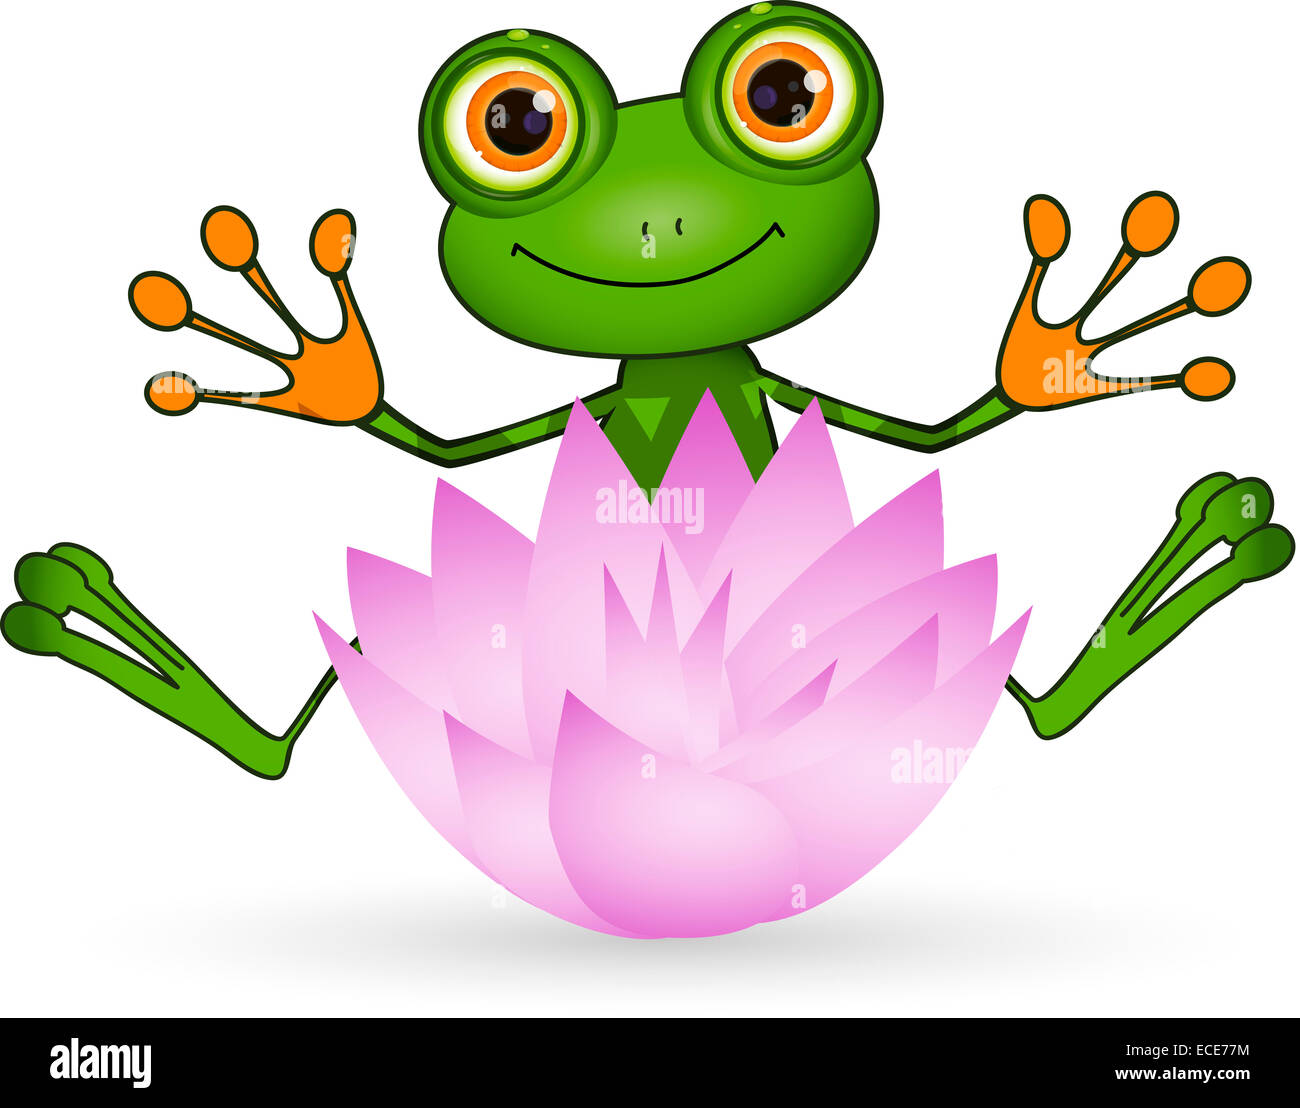 Illustration Cute Green Frog With Lotus Flower Stock Photo Alamy